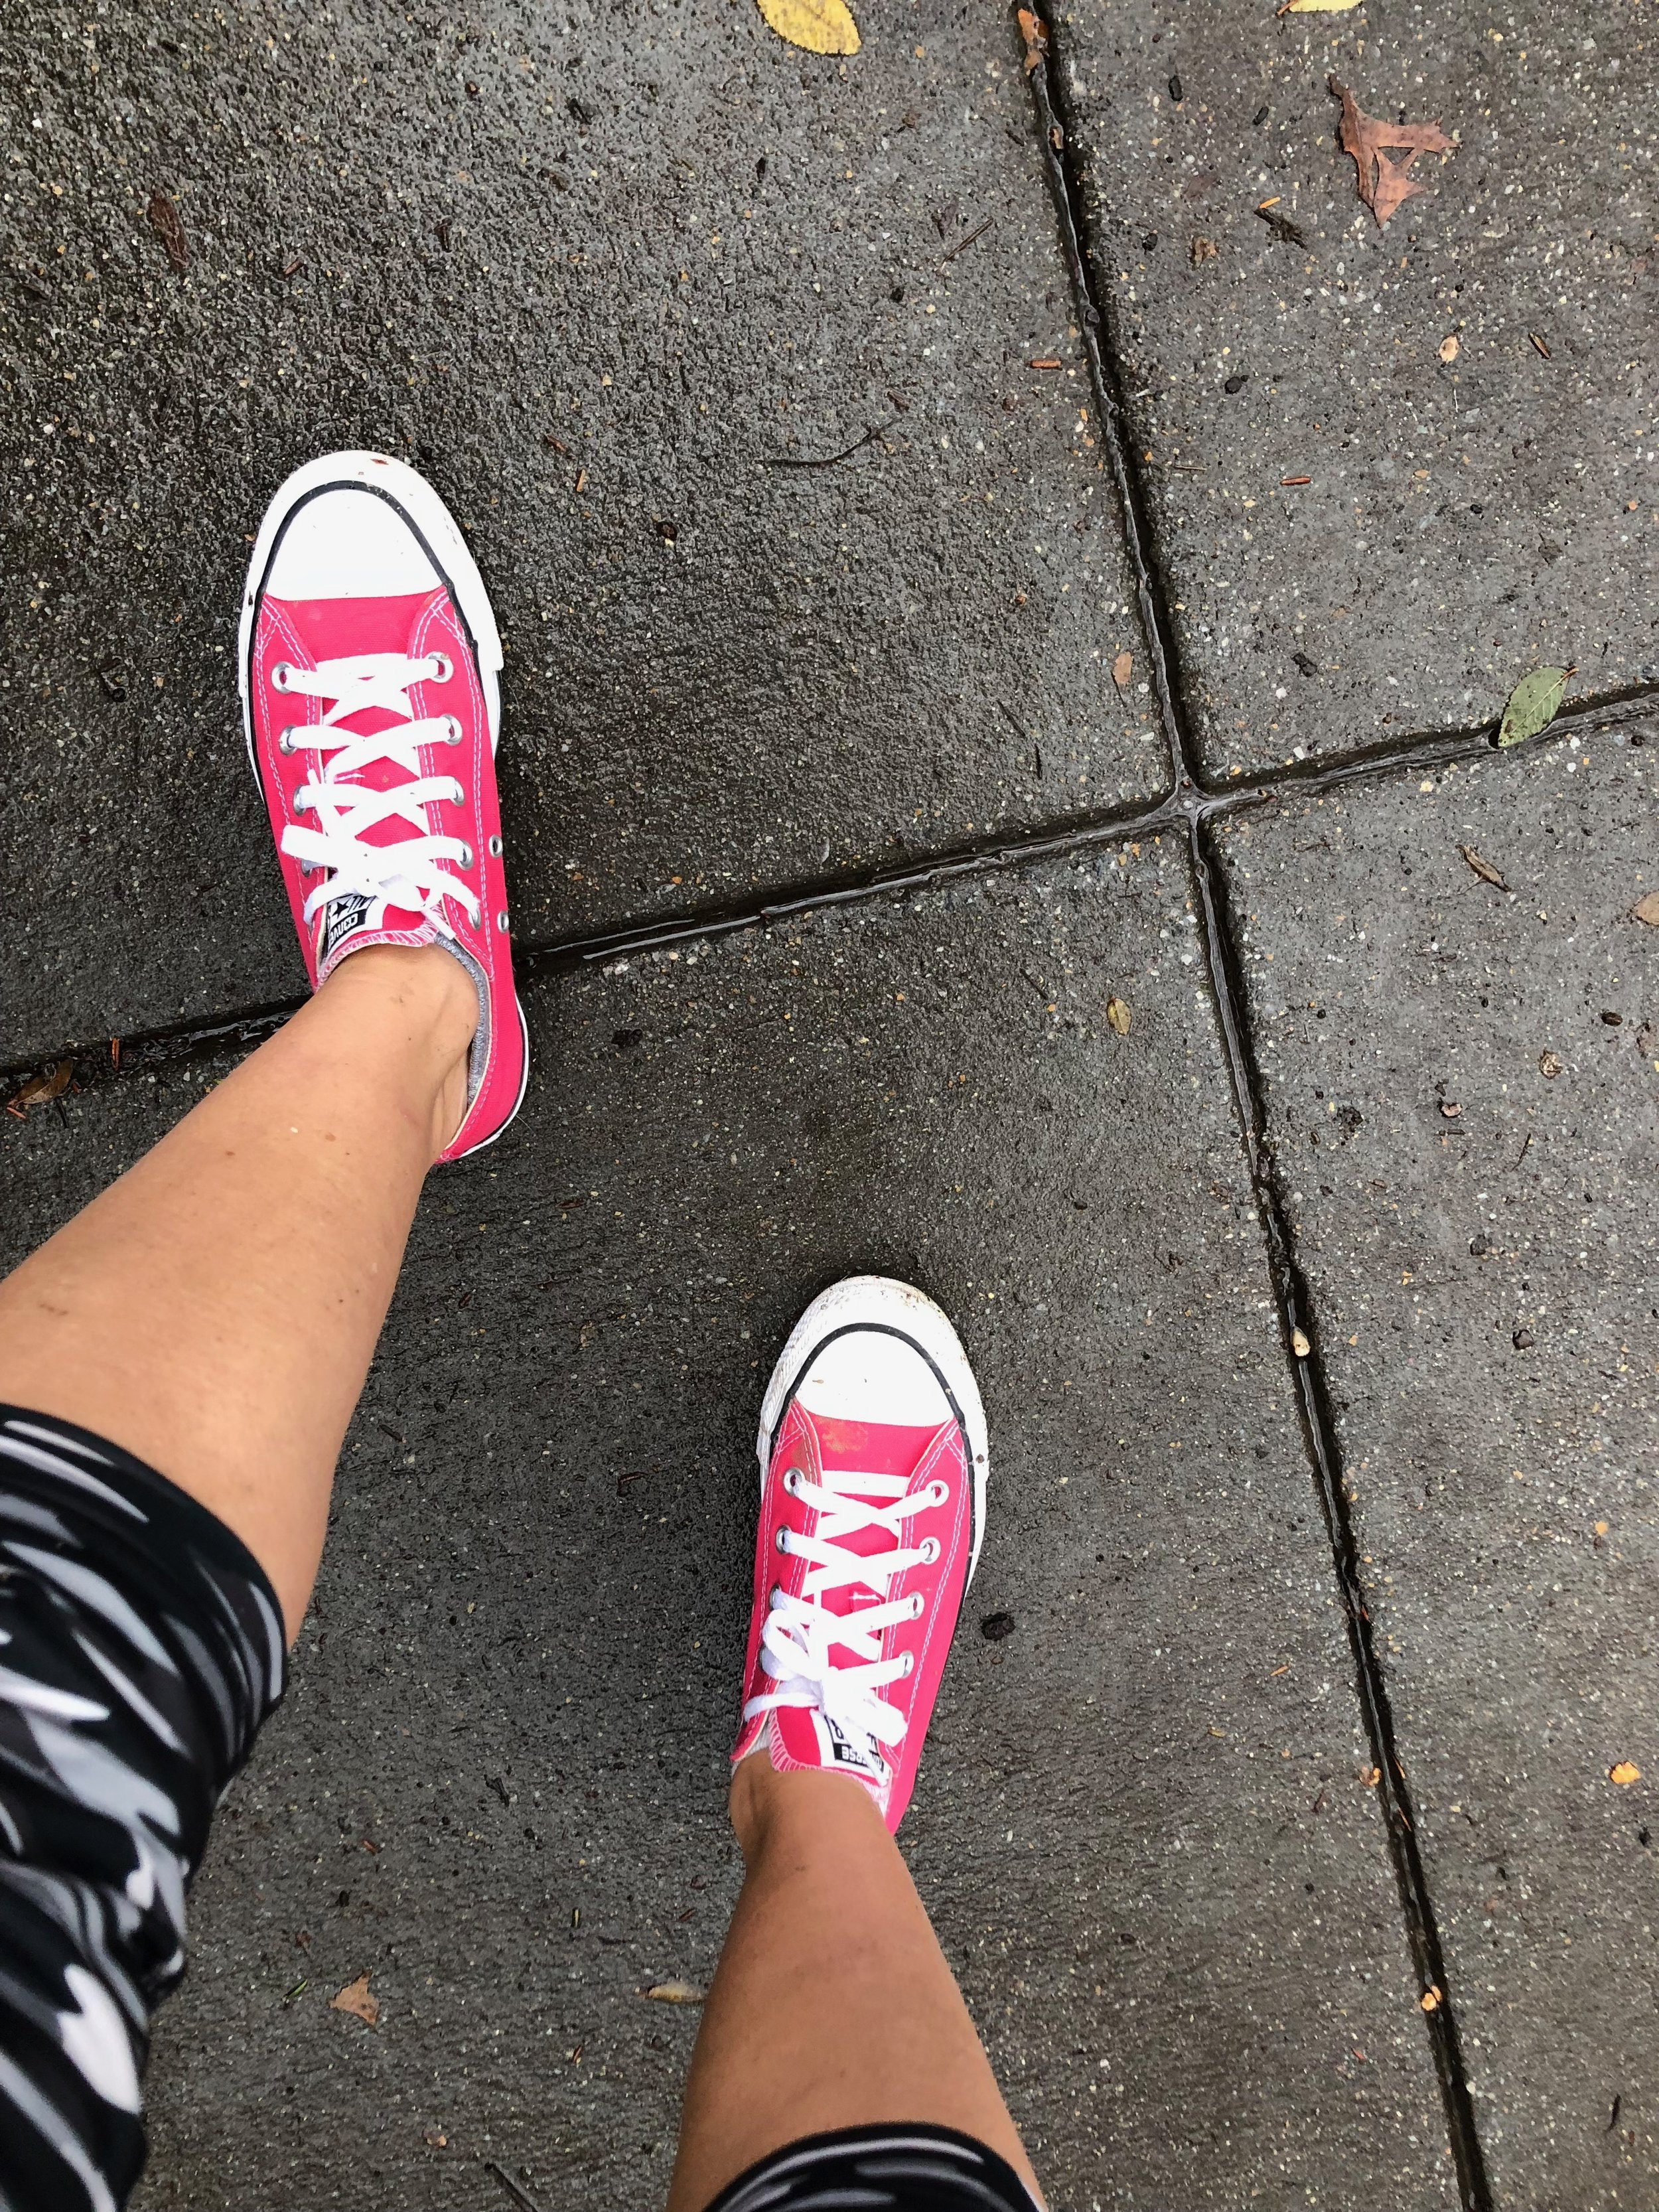 Hot pink Converse make cold adaptation more fun!